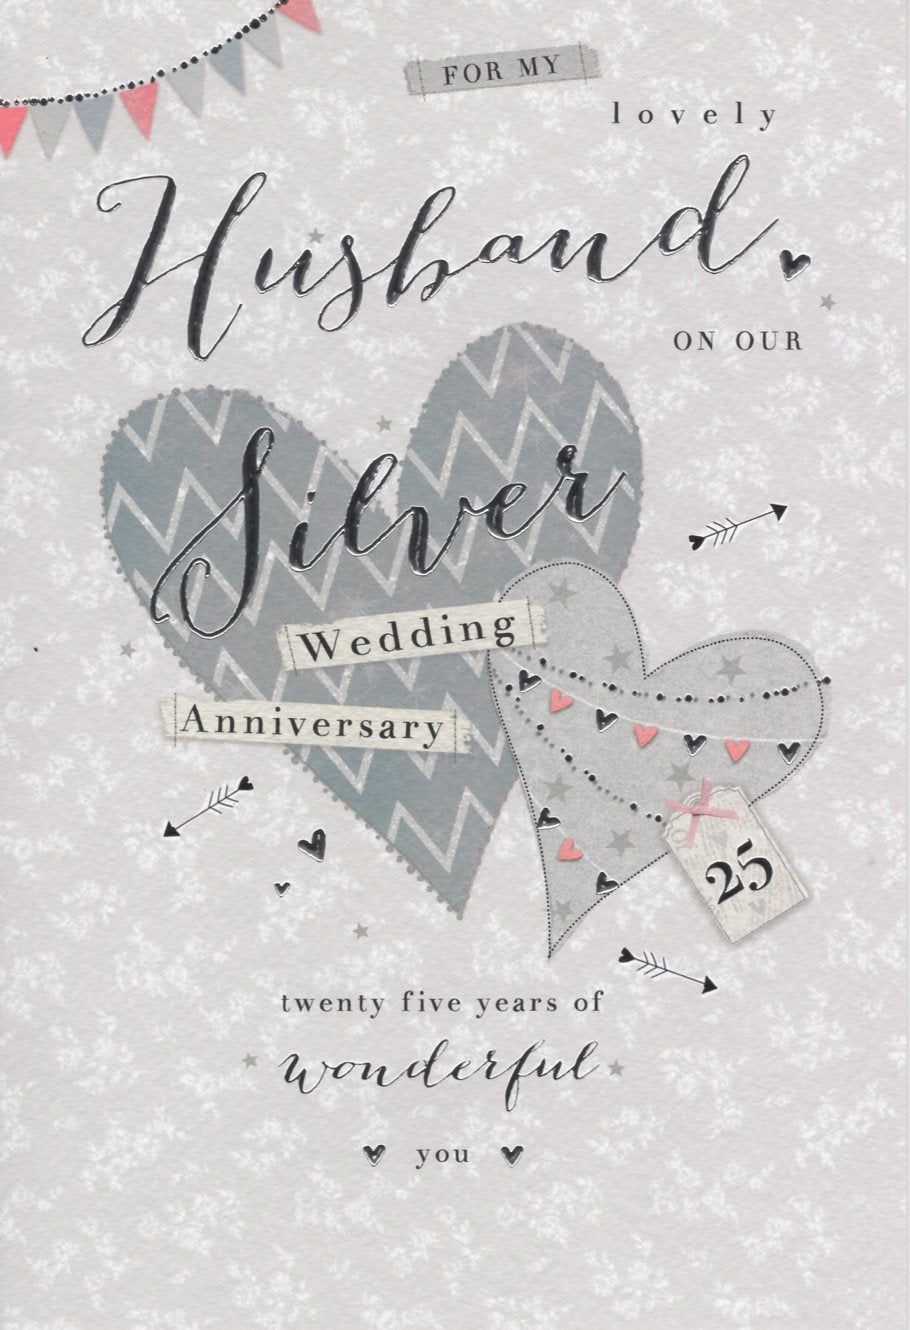 For My Husband on our Silver 25th Wedding Anniversary Card icg